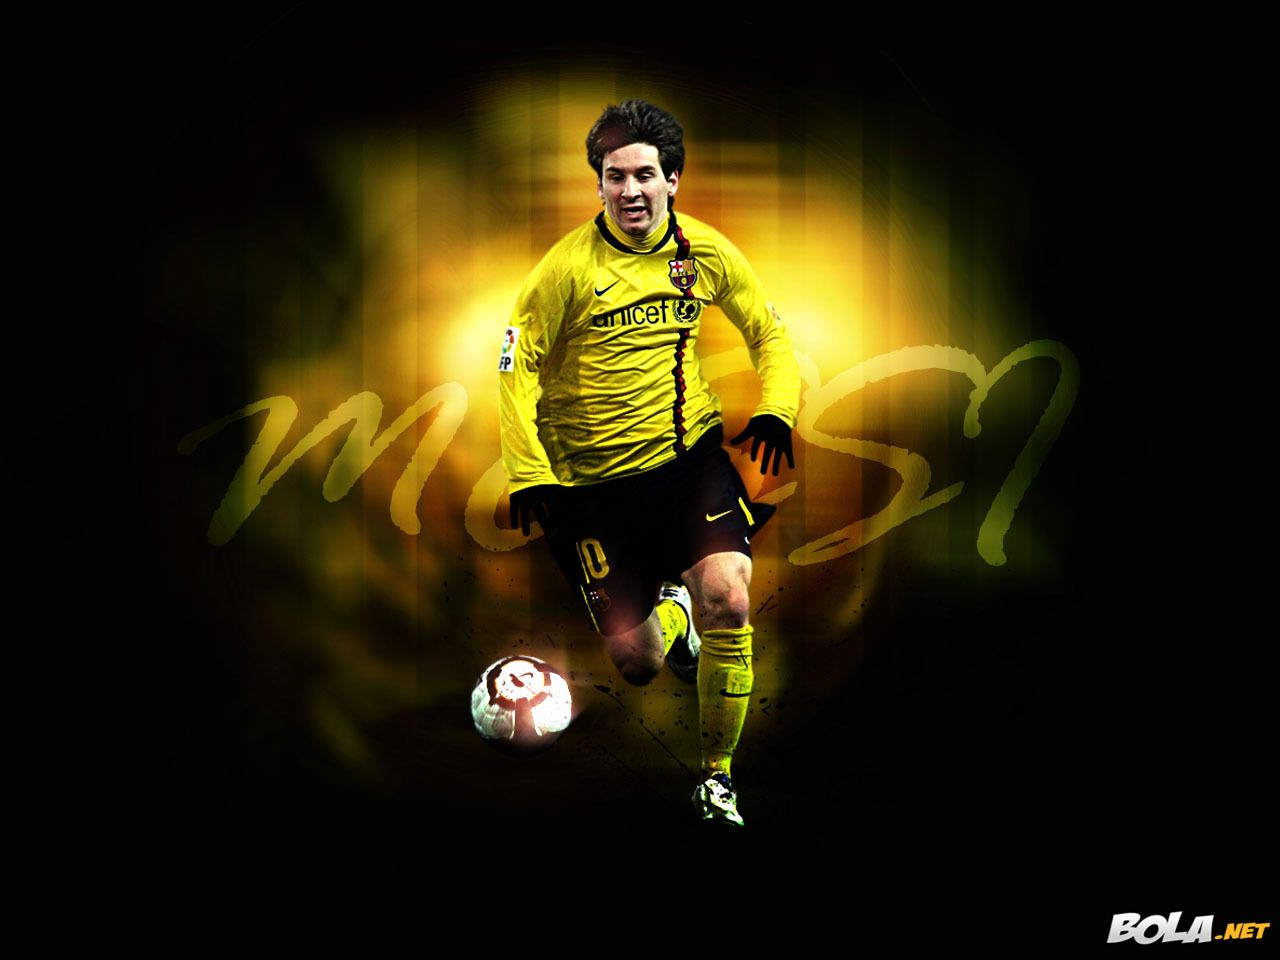 HD Lionel Messi Wallpapers Android Apps on Google Play